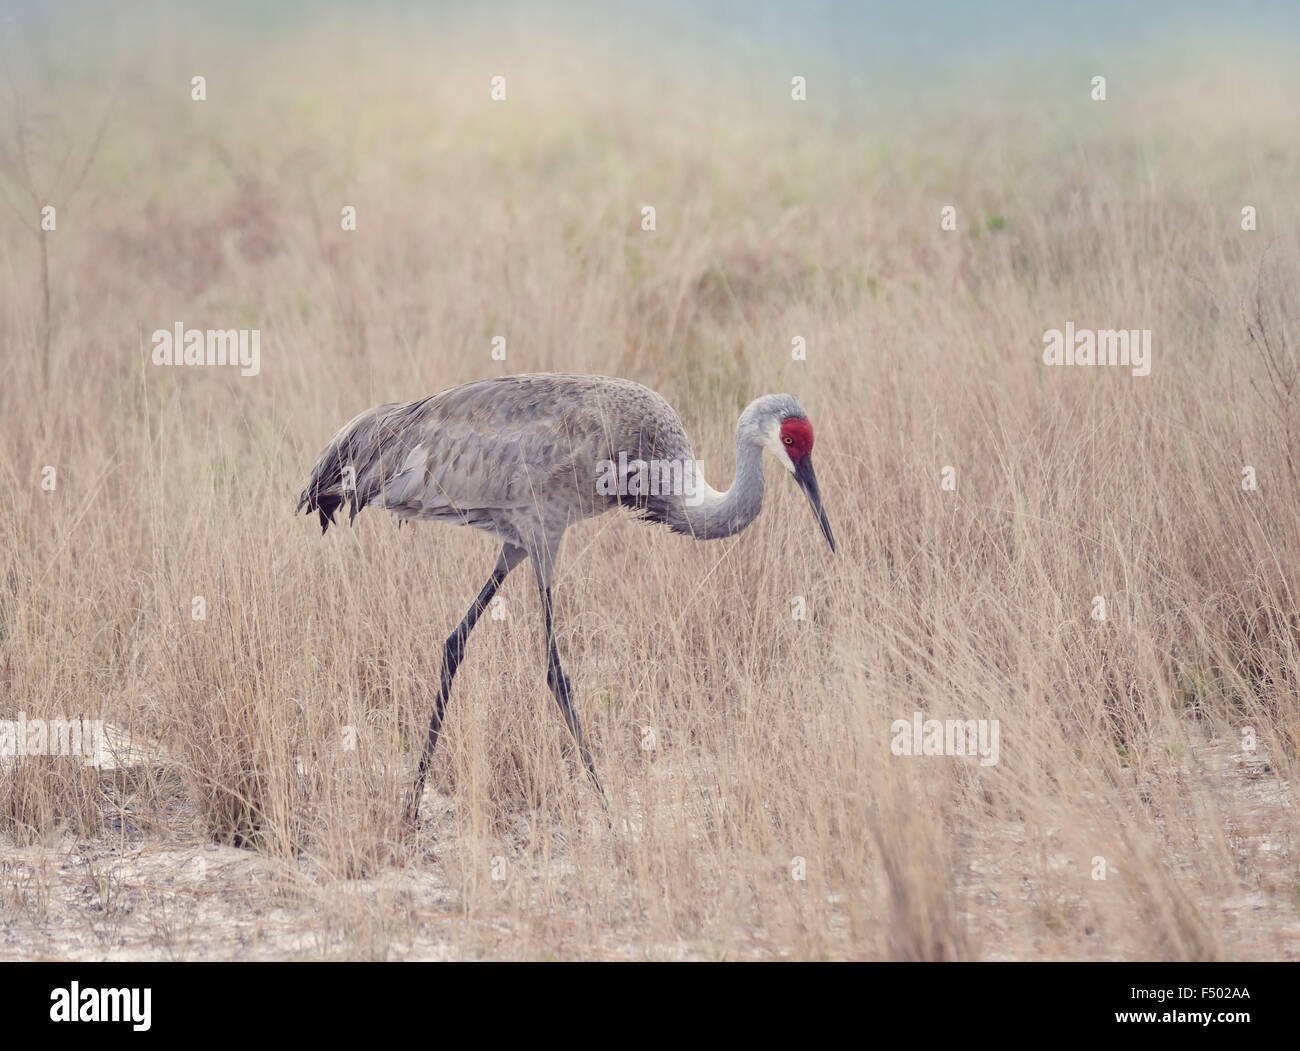 Sandhill Cranes Walking through Tall Grass - Stock Image